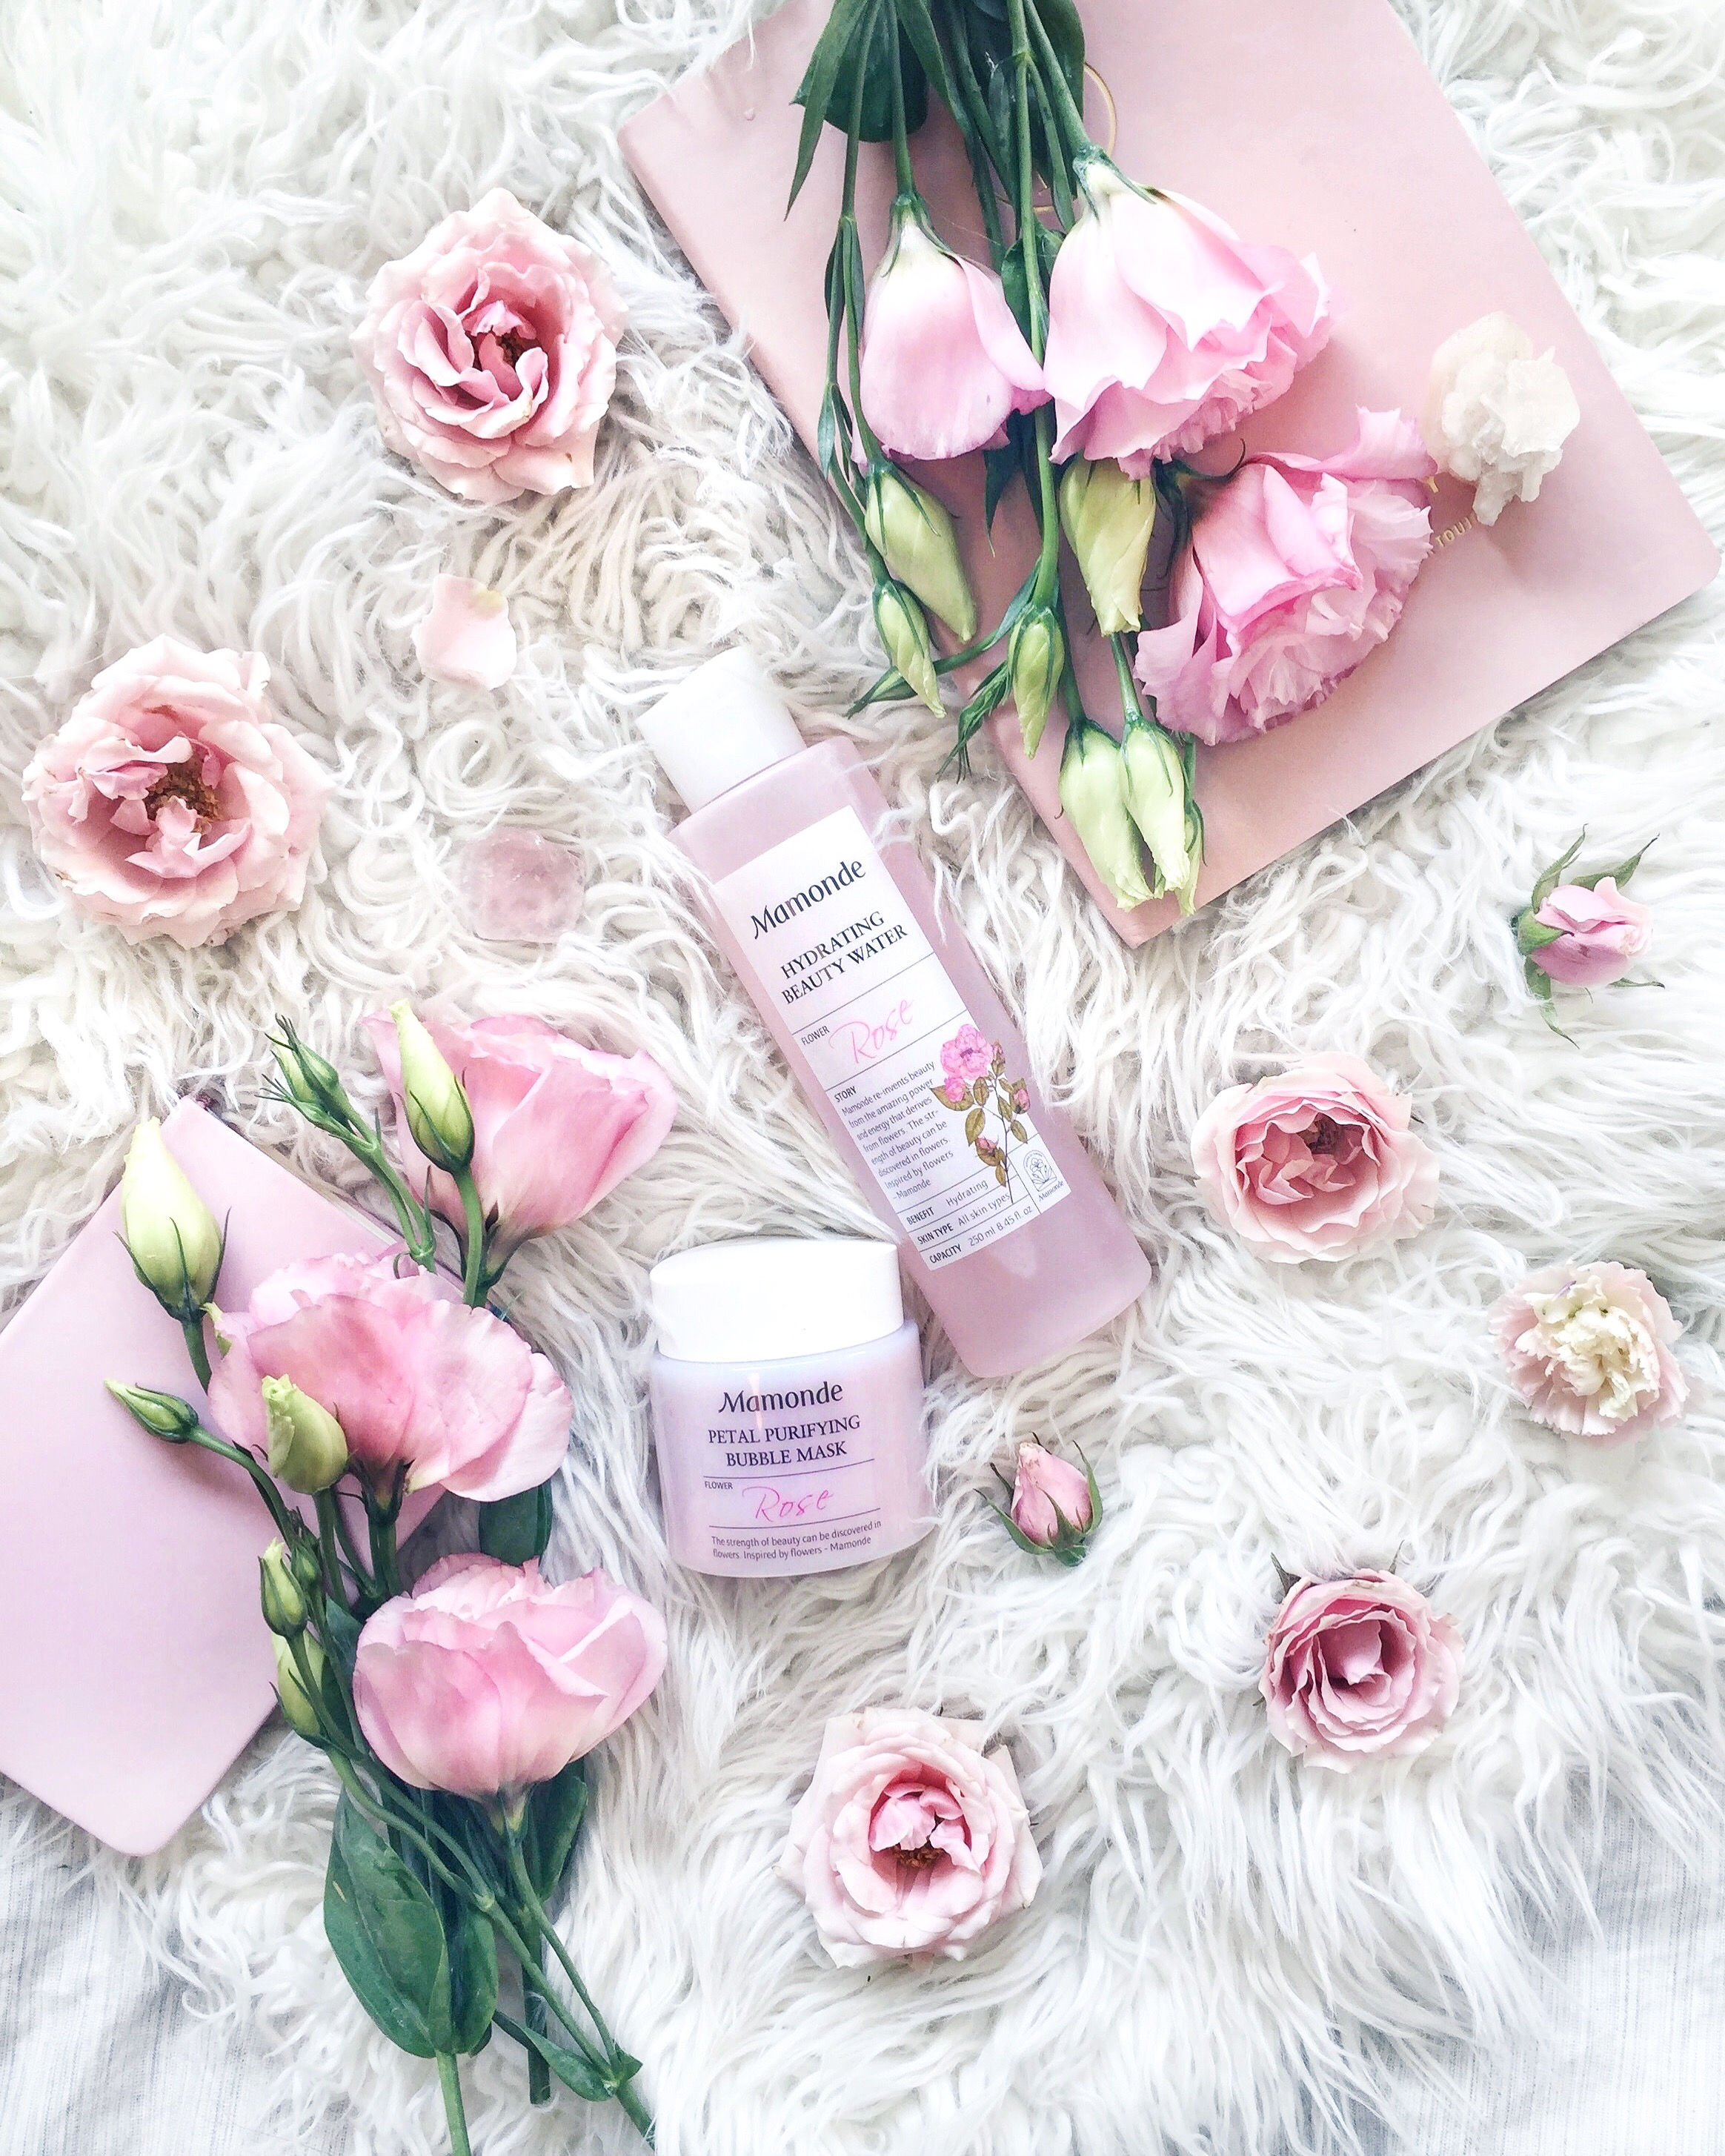 MAMONDE - These smell like a beautiful bouquet of roses and they're made from natural ingredients and real rose petals! I'm all about using natural skincare products, and Mamonde always makes the best!1. PETAL PURIFYING BUBBLE MASKThis was also in my last month's favs but I'm still obsessed! It's the best 1-minute mask I've ever used. The rose scent is tantalizing, the bubbling effect is so fun, and the instant results are perfect for busy mornings!2. HYDRATING BEAUTY WATERThis is an amazing toner that preps, tones, nourishes, and hydrates your skin! It's also made from 100% organic damask rose, and smells like a beautiful rose garden! I use it right before serums.